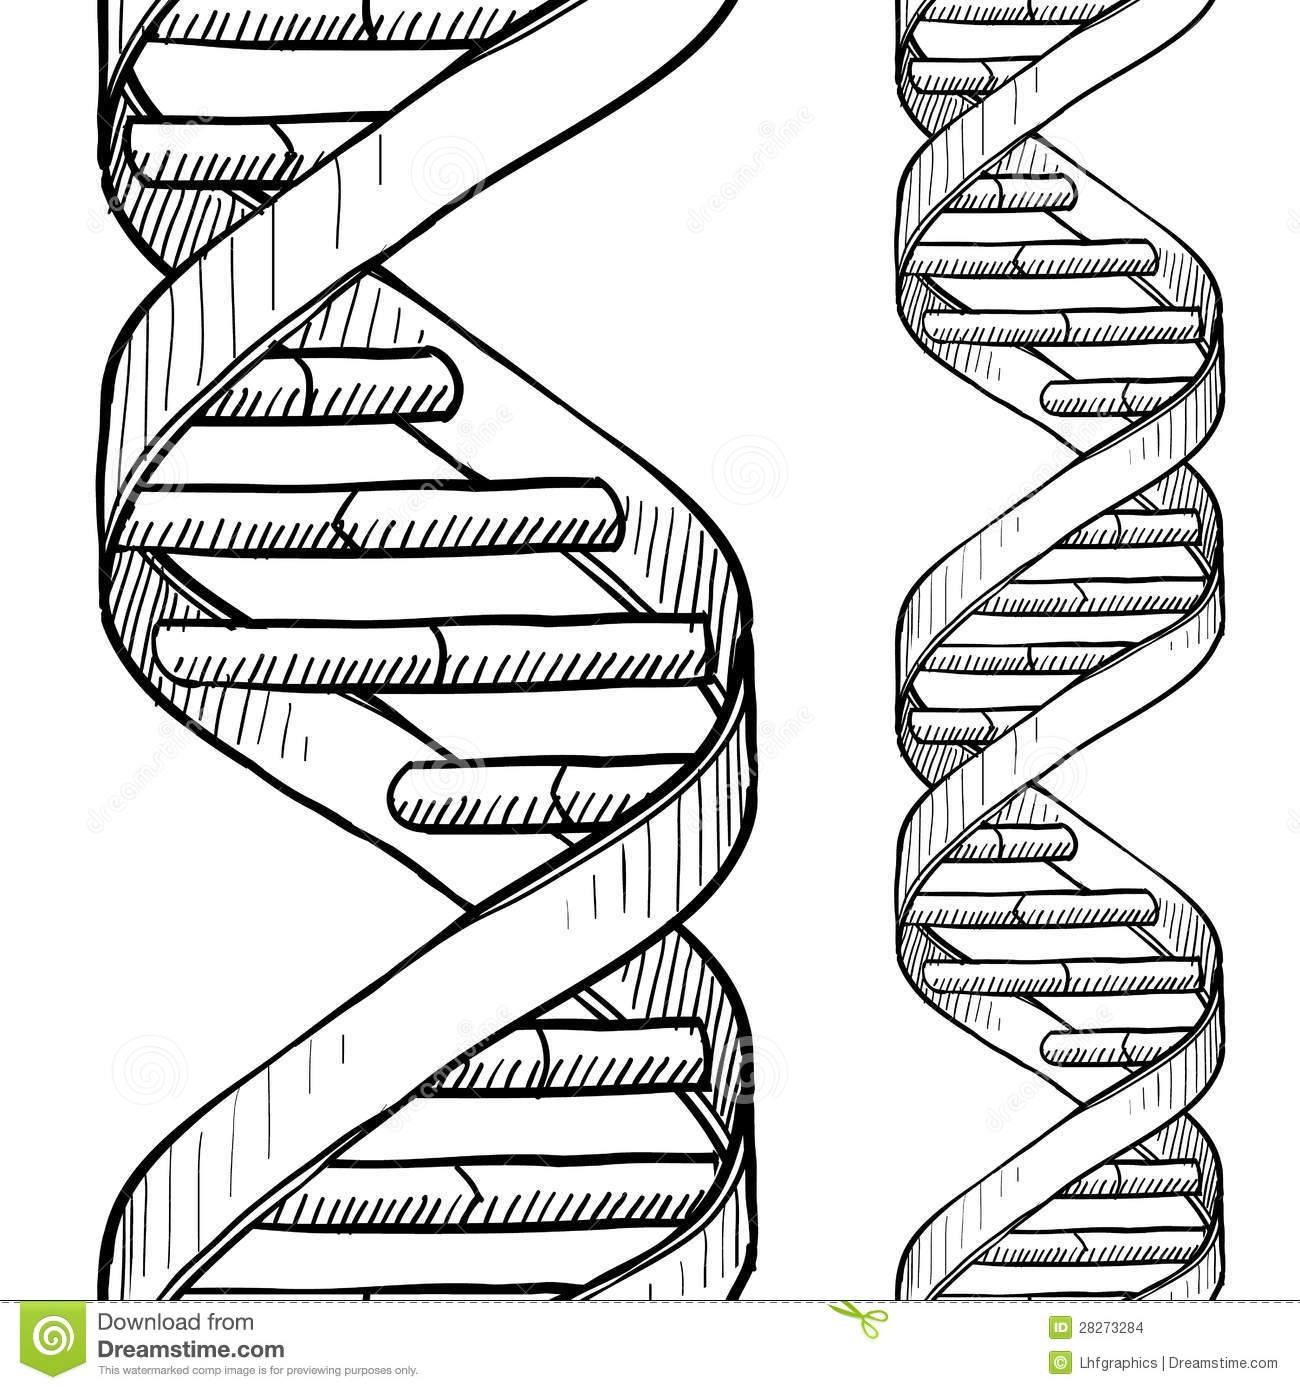 genetics coloring pages - photo#29